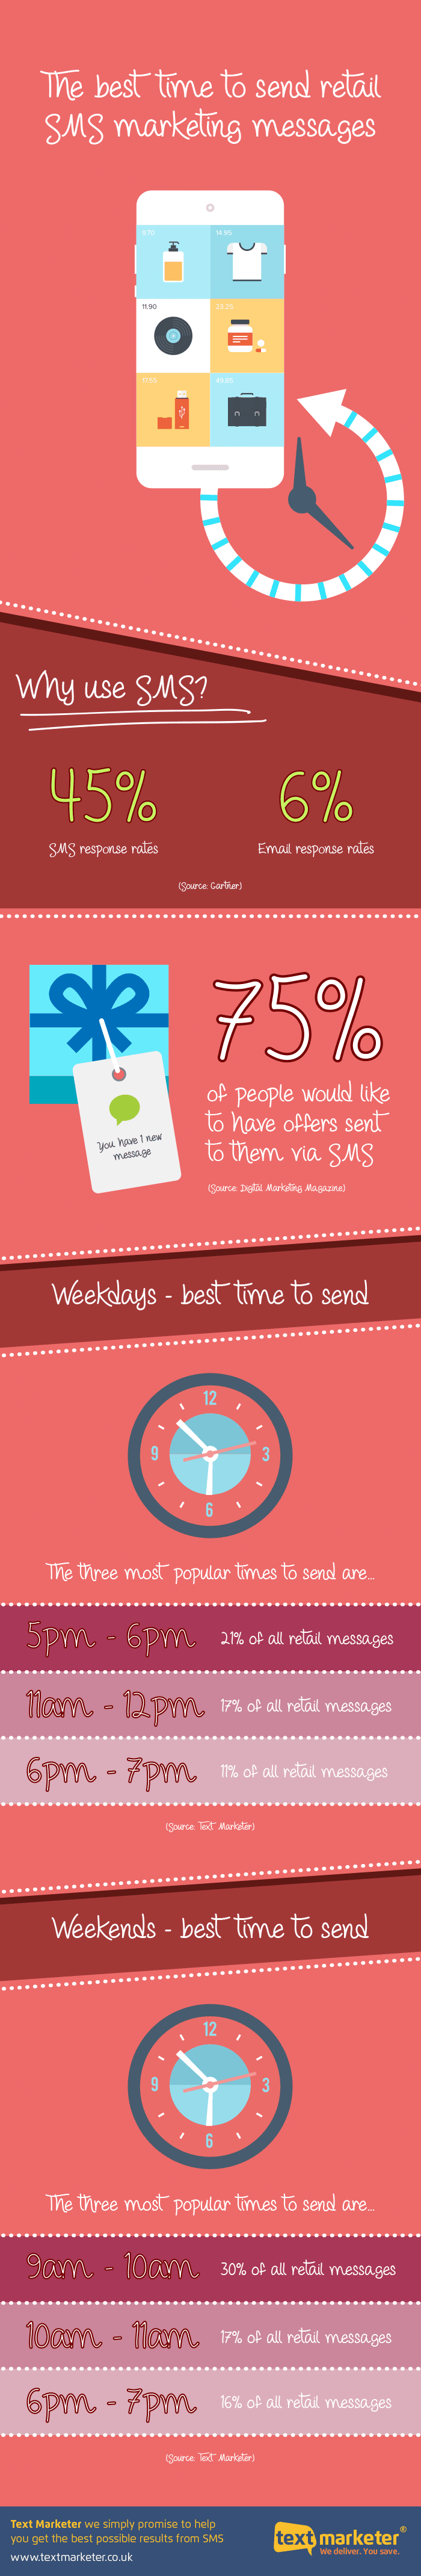 When to send marketing texts: weekdays between 11 a.m. - 12 p.m. or between 5 and 7 p.m.